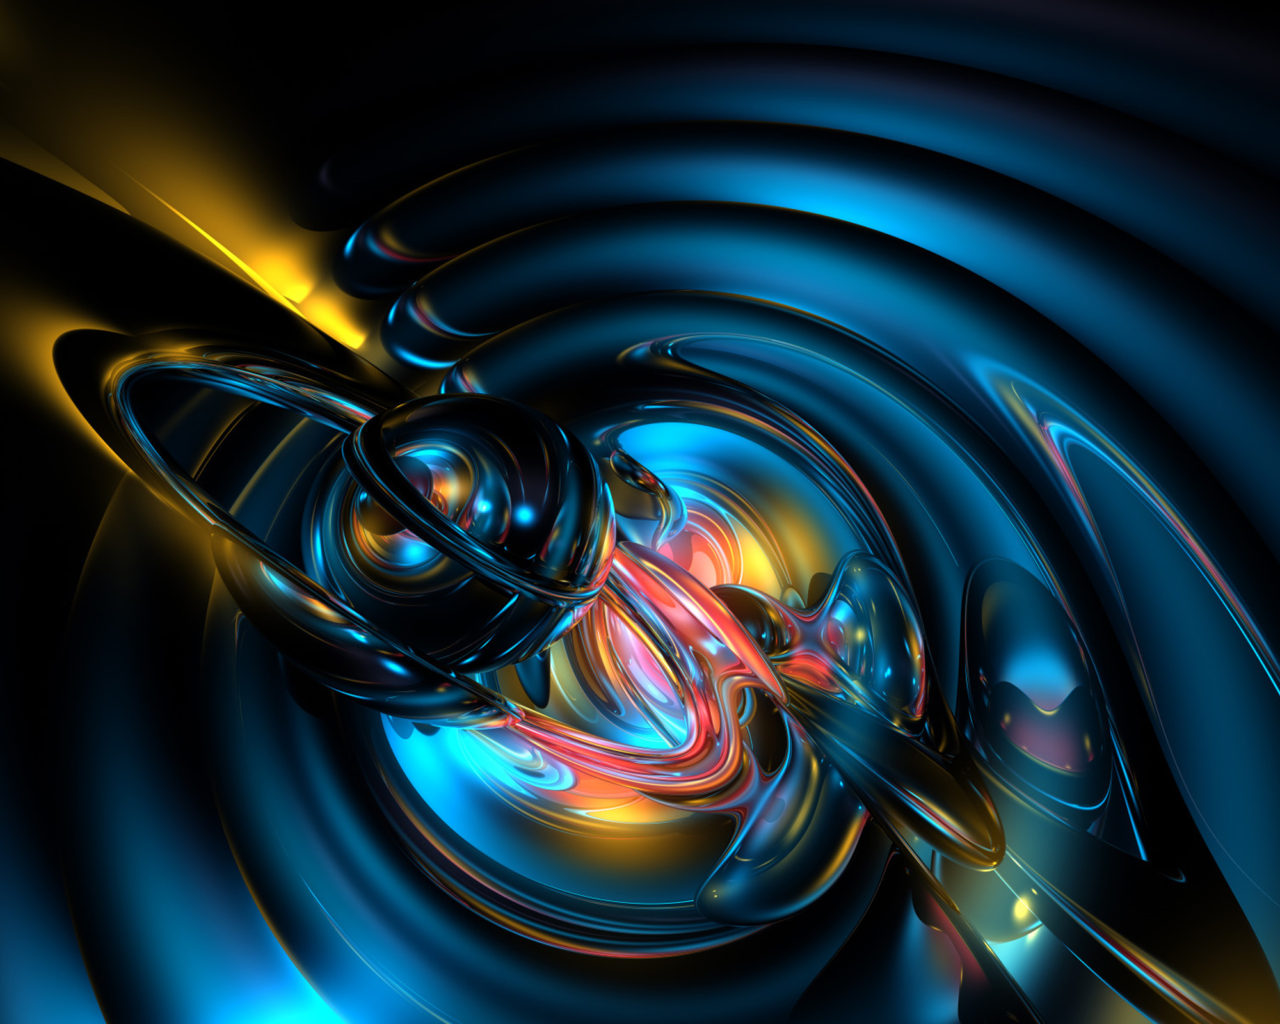 Cute Circle Wallpaper Abstract 3 D Blue Graphics Art Works Hd Wallpapers For